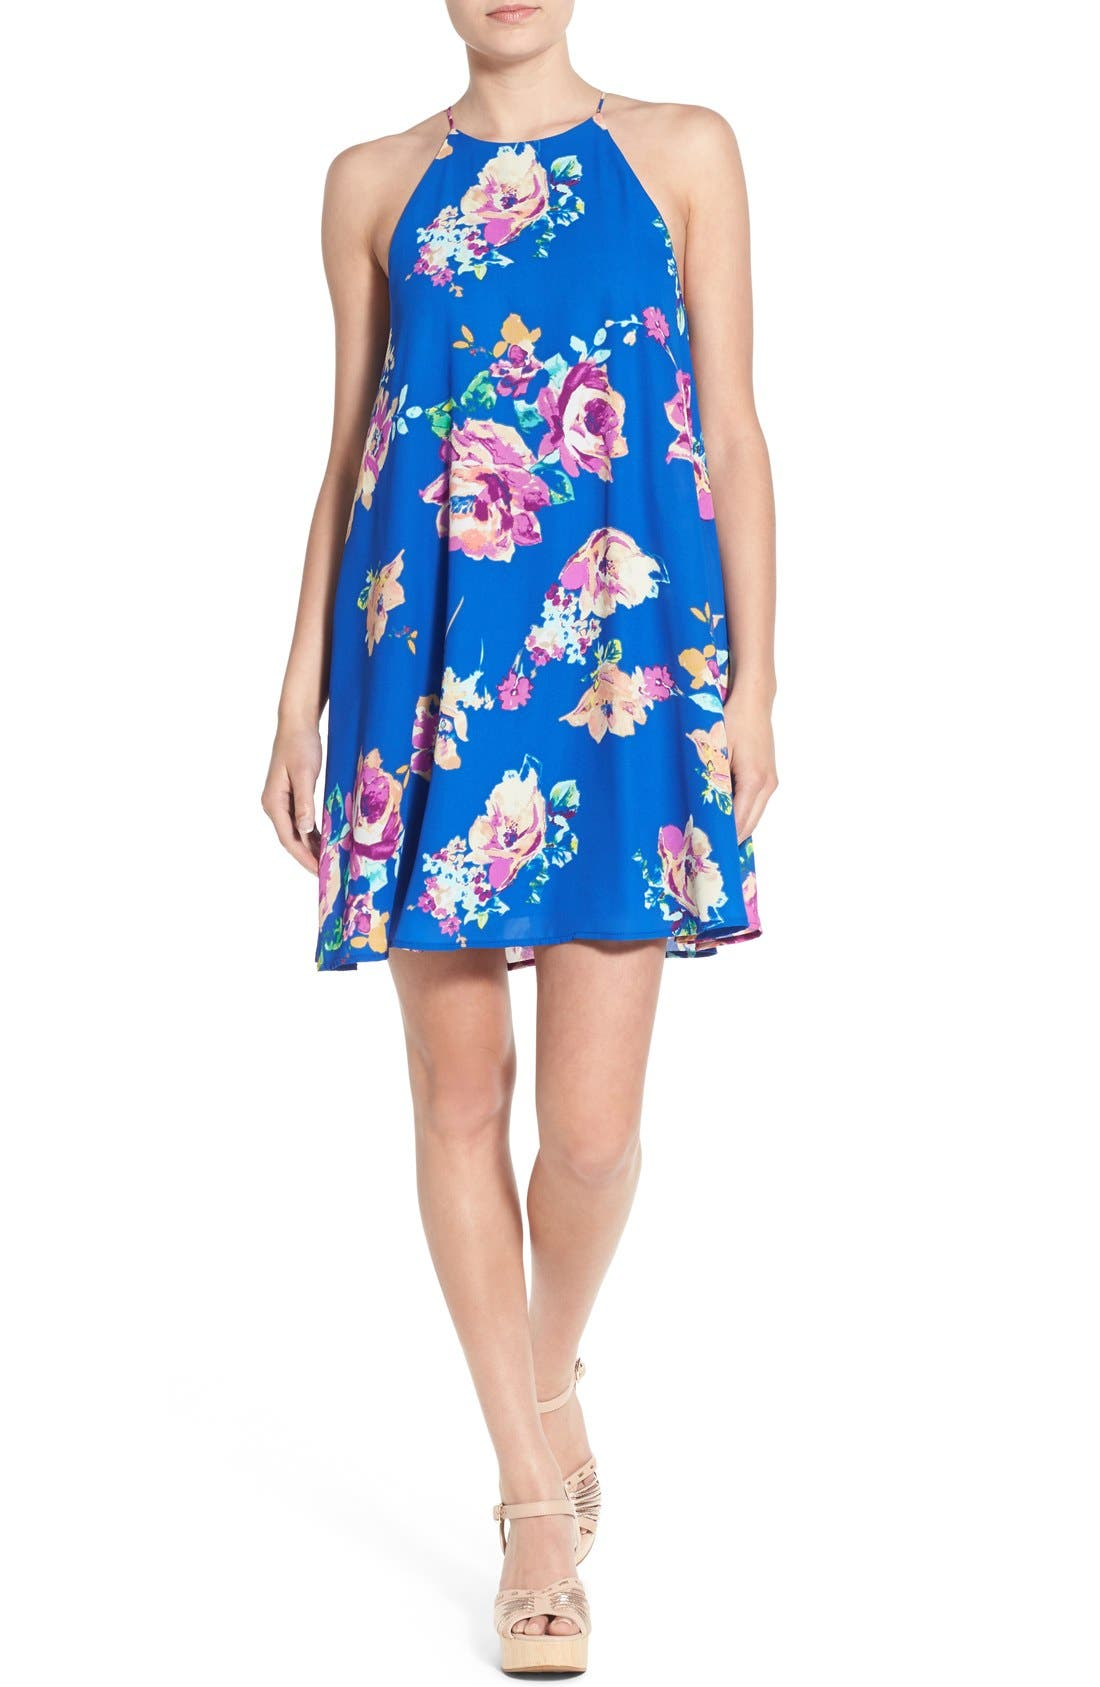 Alternate Image 1 Selected - Everly Floral Print High Neck Trapeze Dress